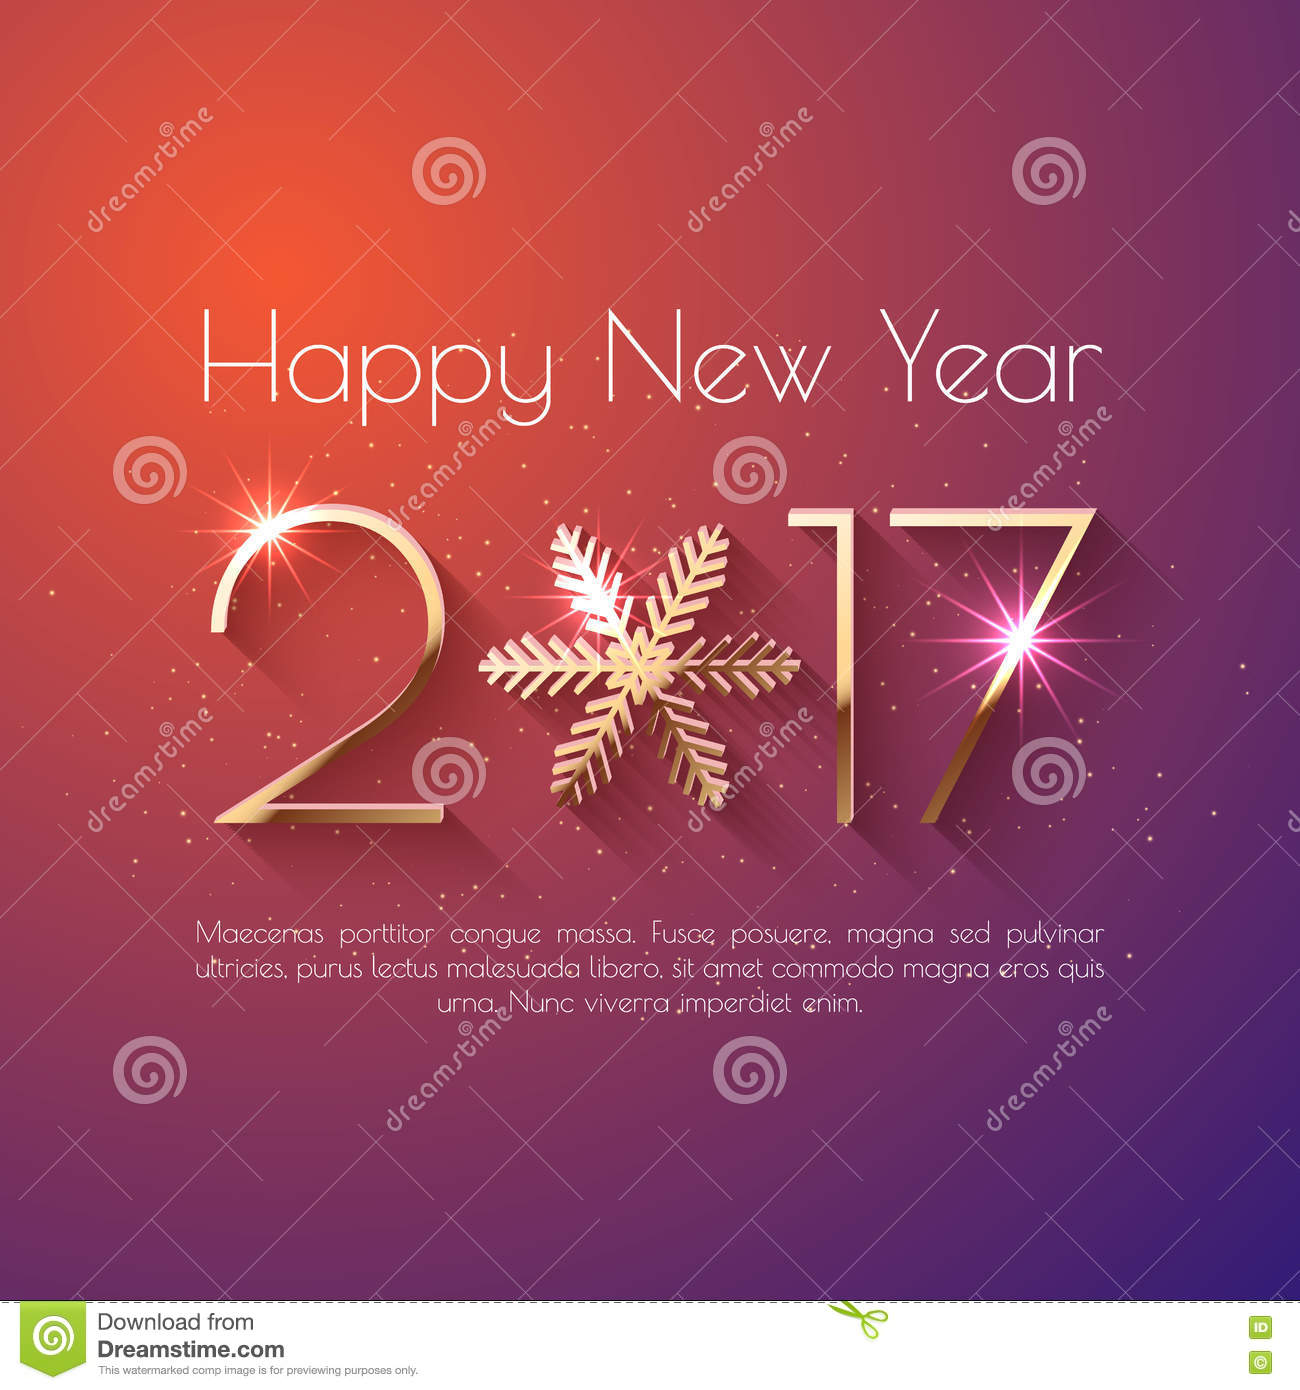 Happy New Year 2017 Text Design Stock Vector Illustration Of